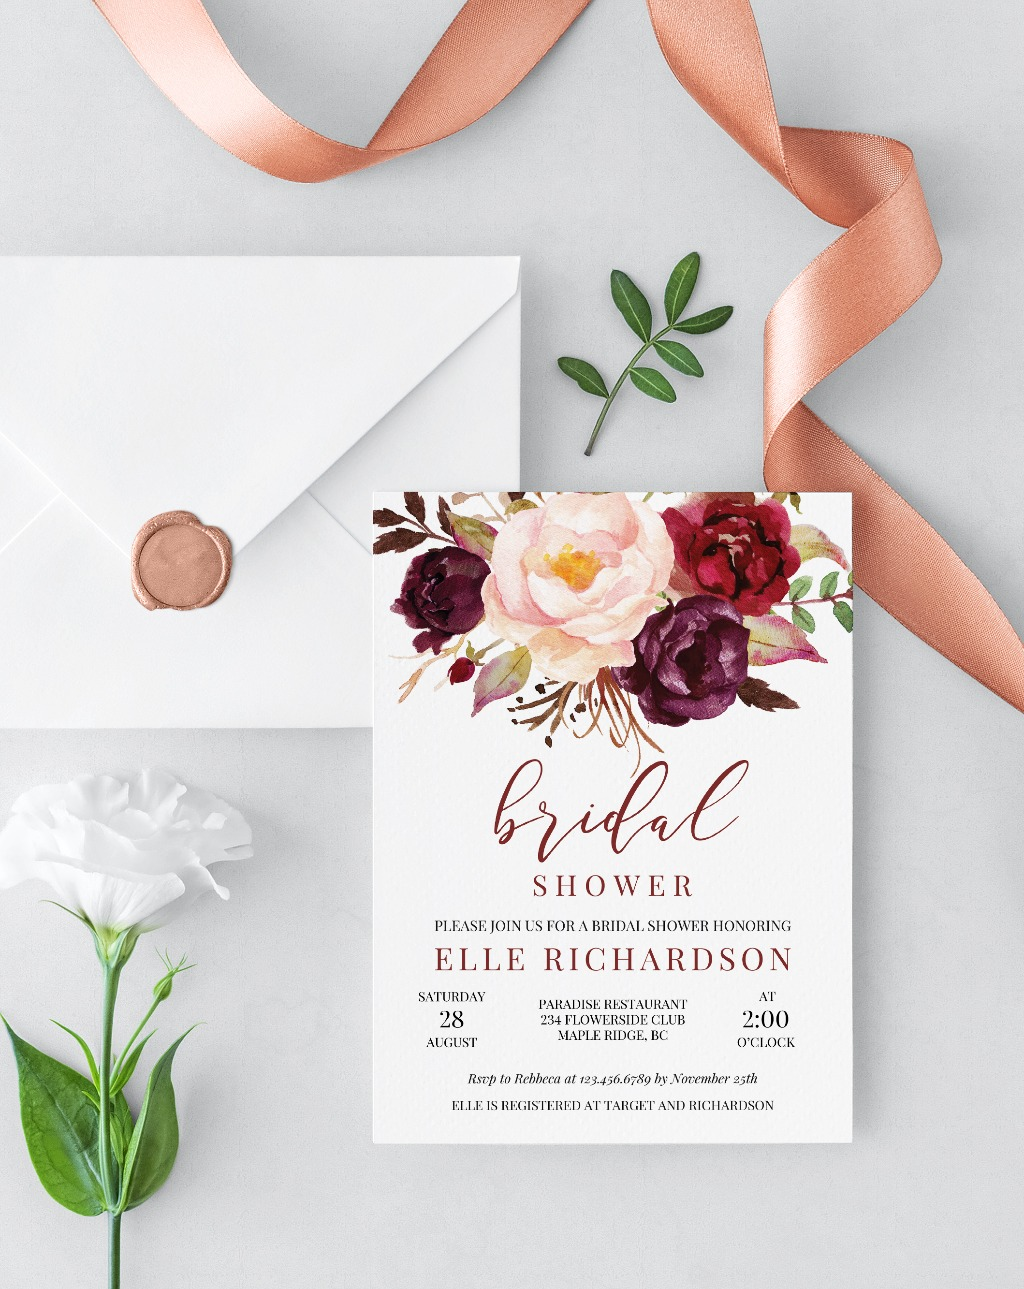 AMAZING BORDO AND PINK FLOWERS INVITATION, features hand painted watercolor burgundy and blush pink flowers, accented by elegant calligraphy